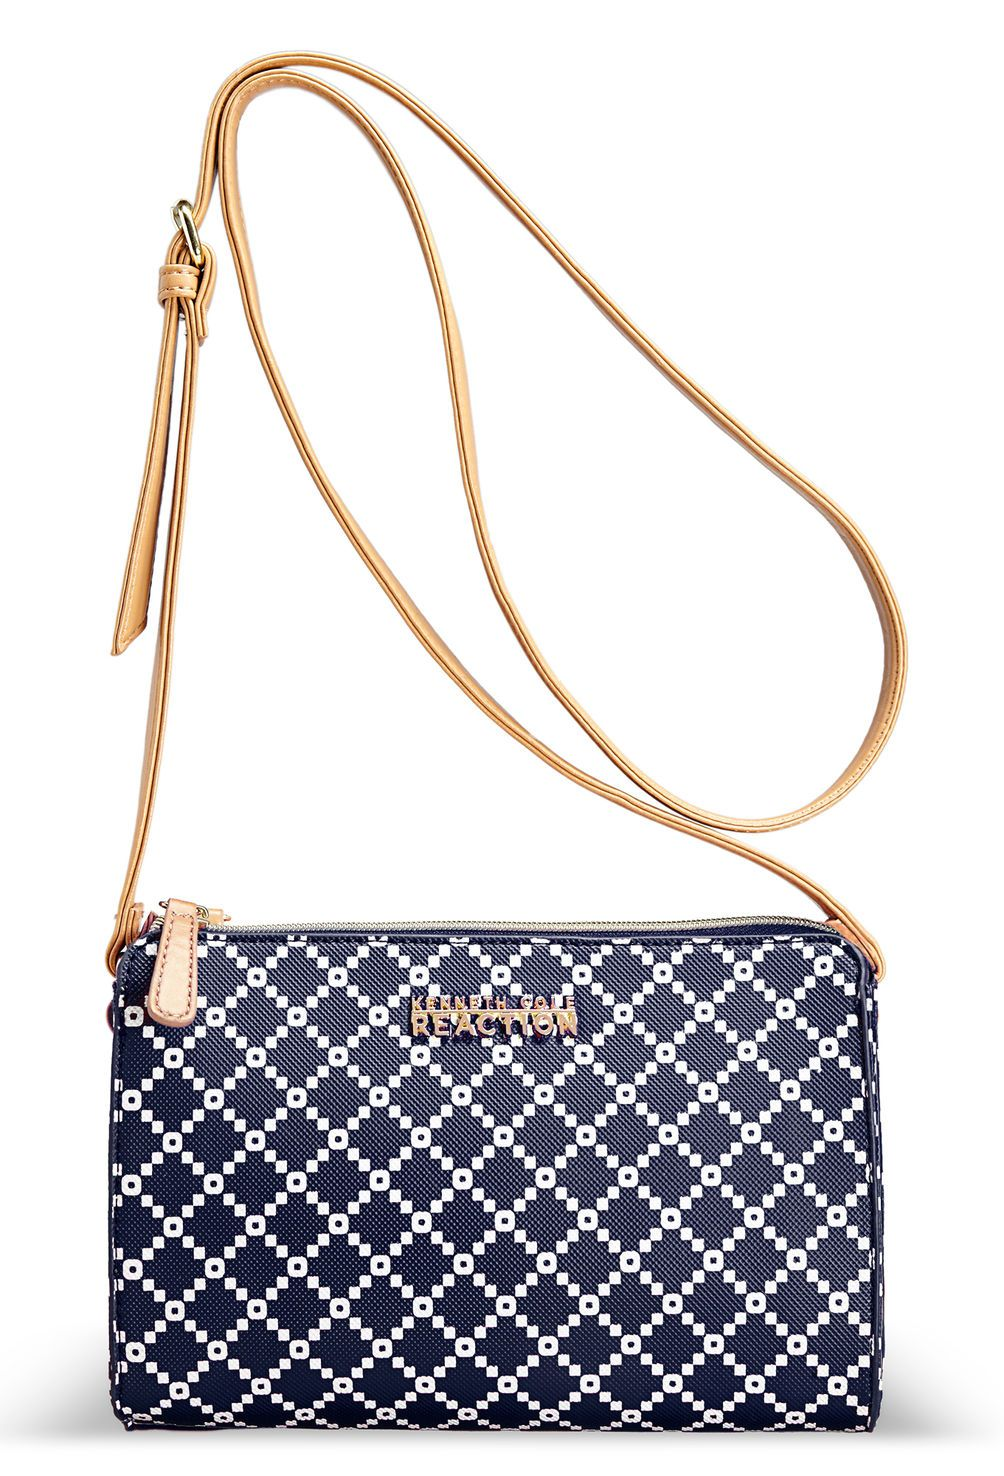 8549e321ed7a Juicy Couture India Stud Small Satchel